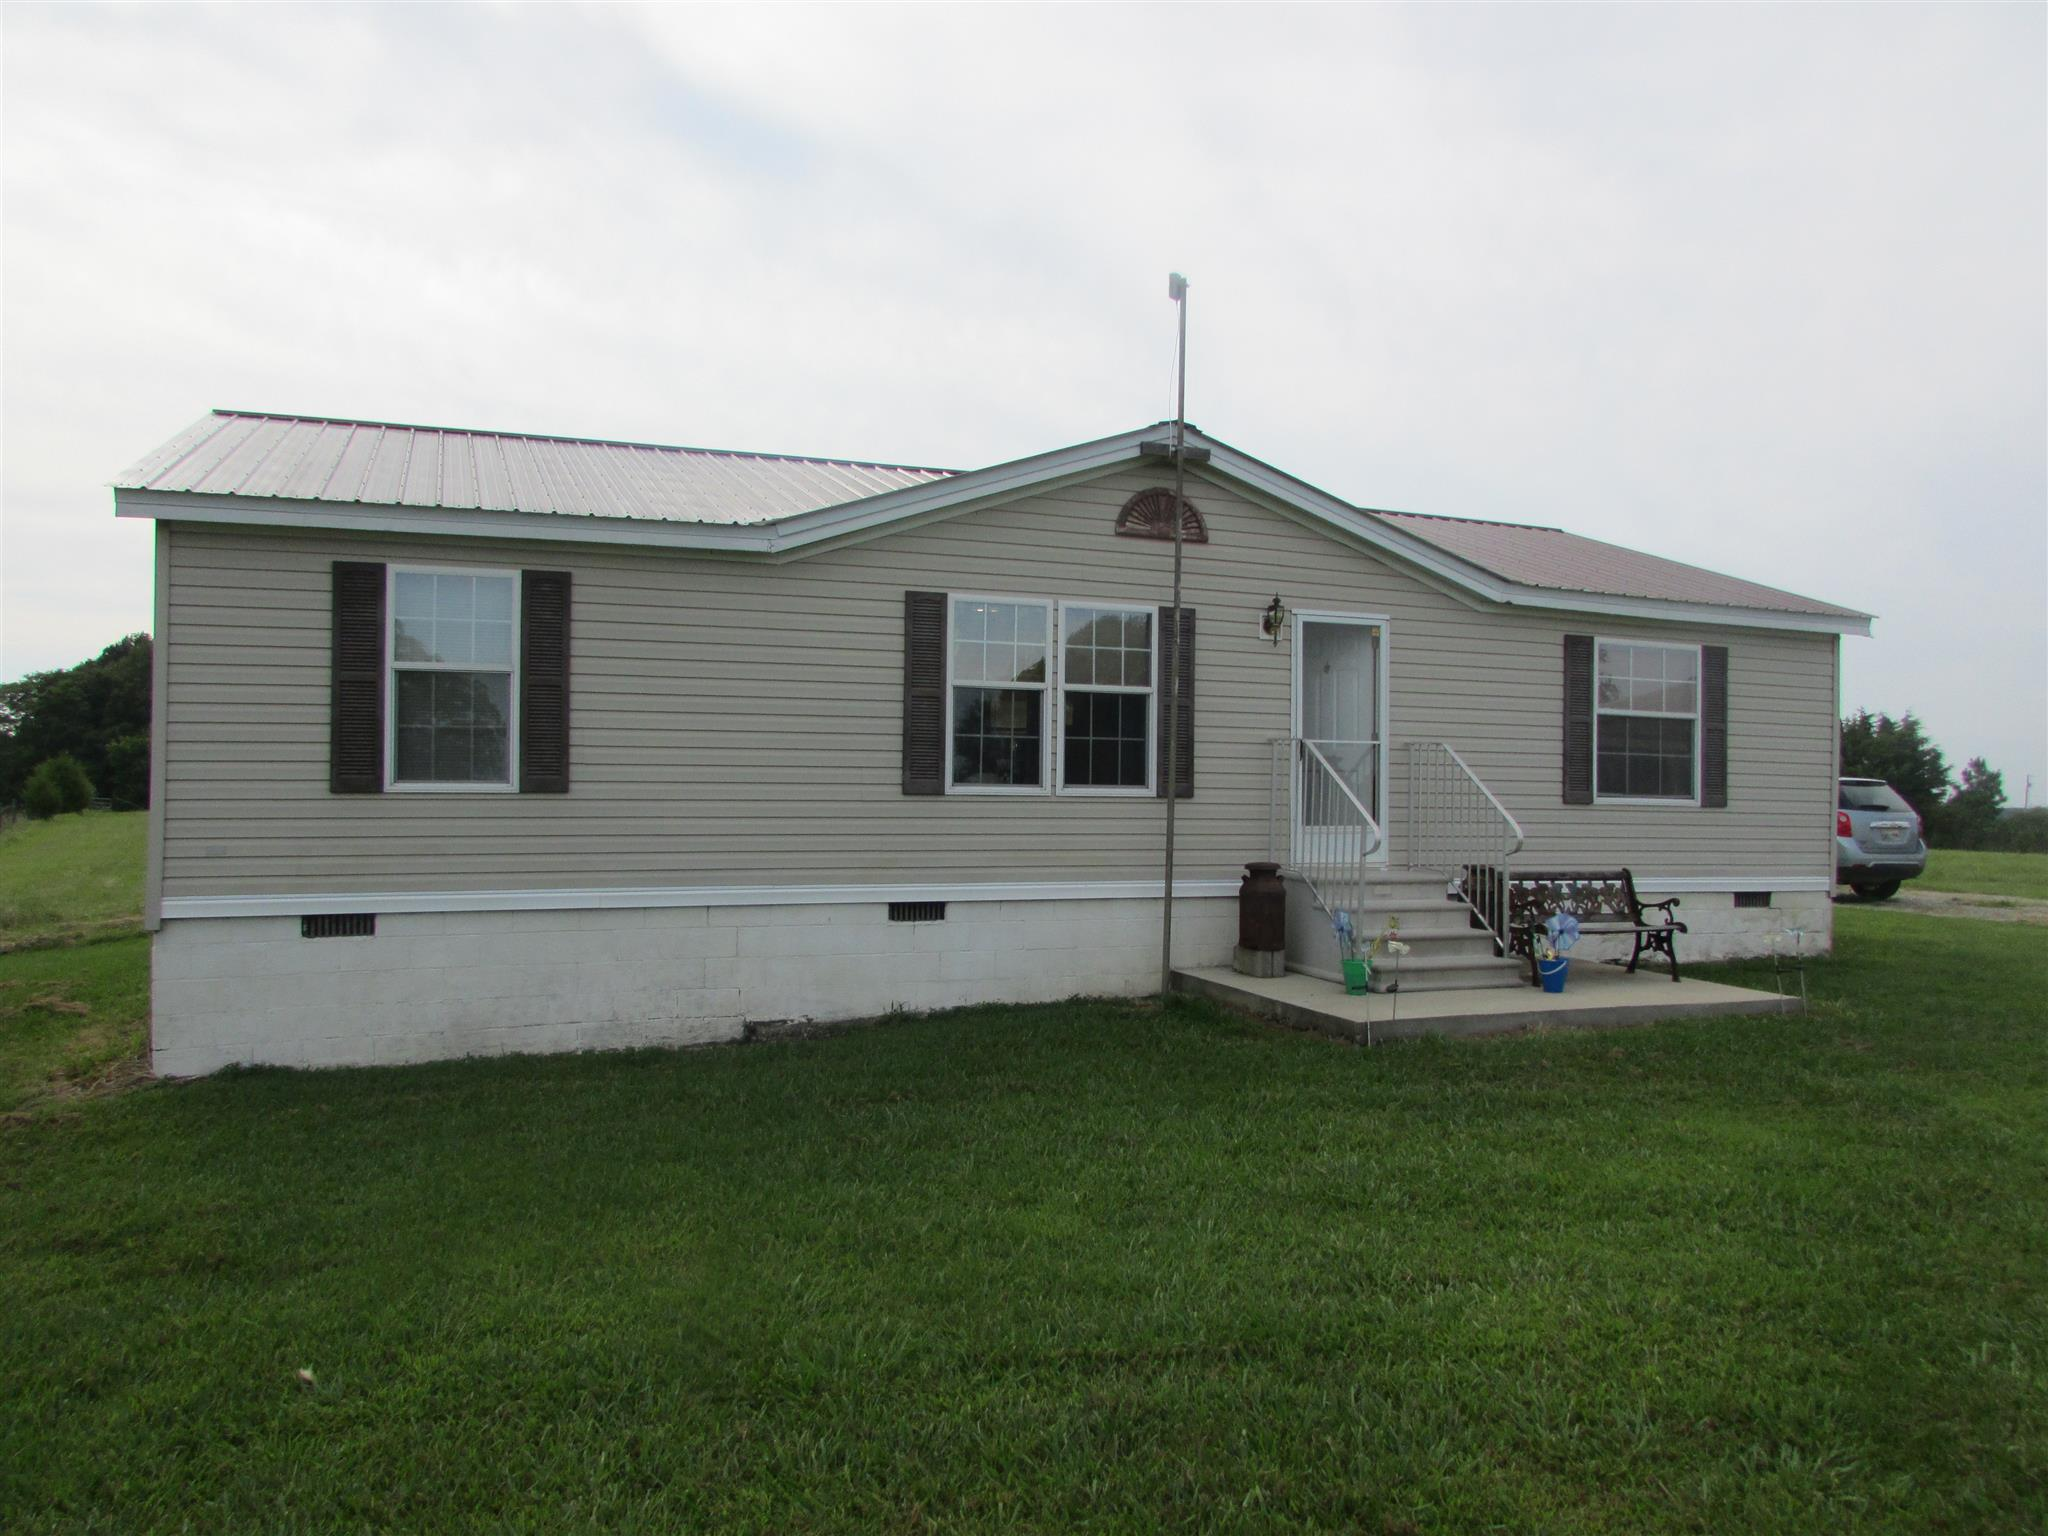 9833 Buttermilk Ridge Rd, N, Lawrenceburg, TN 38464 - Lawrenceburg, TN real estate listing